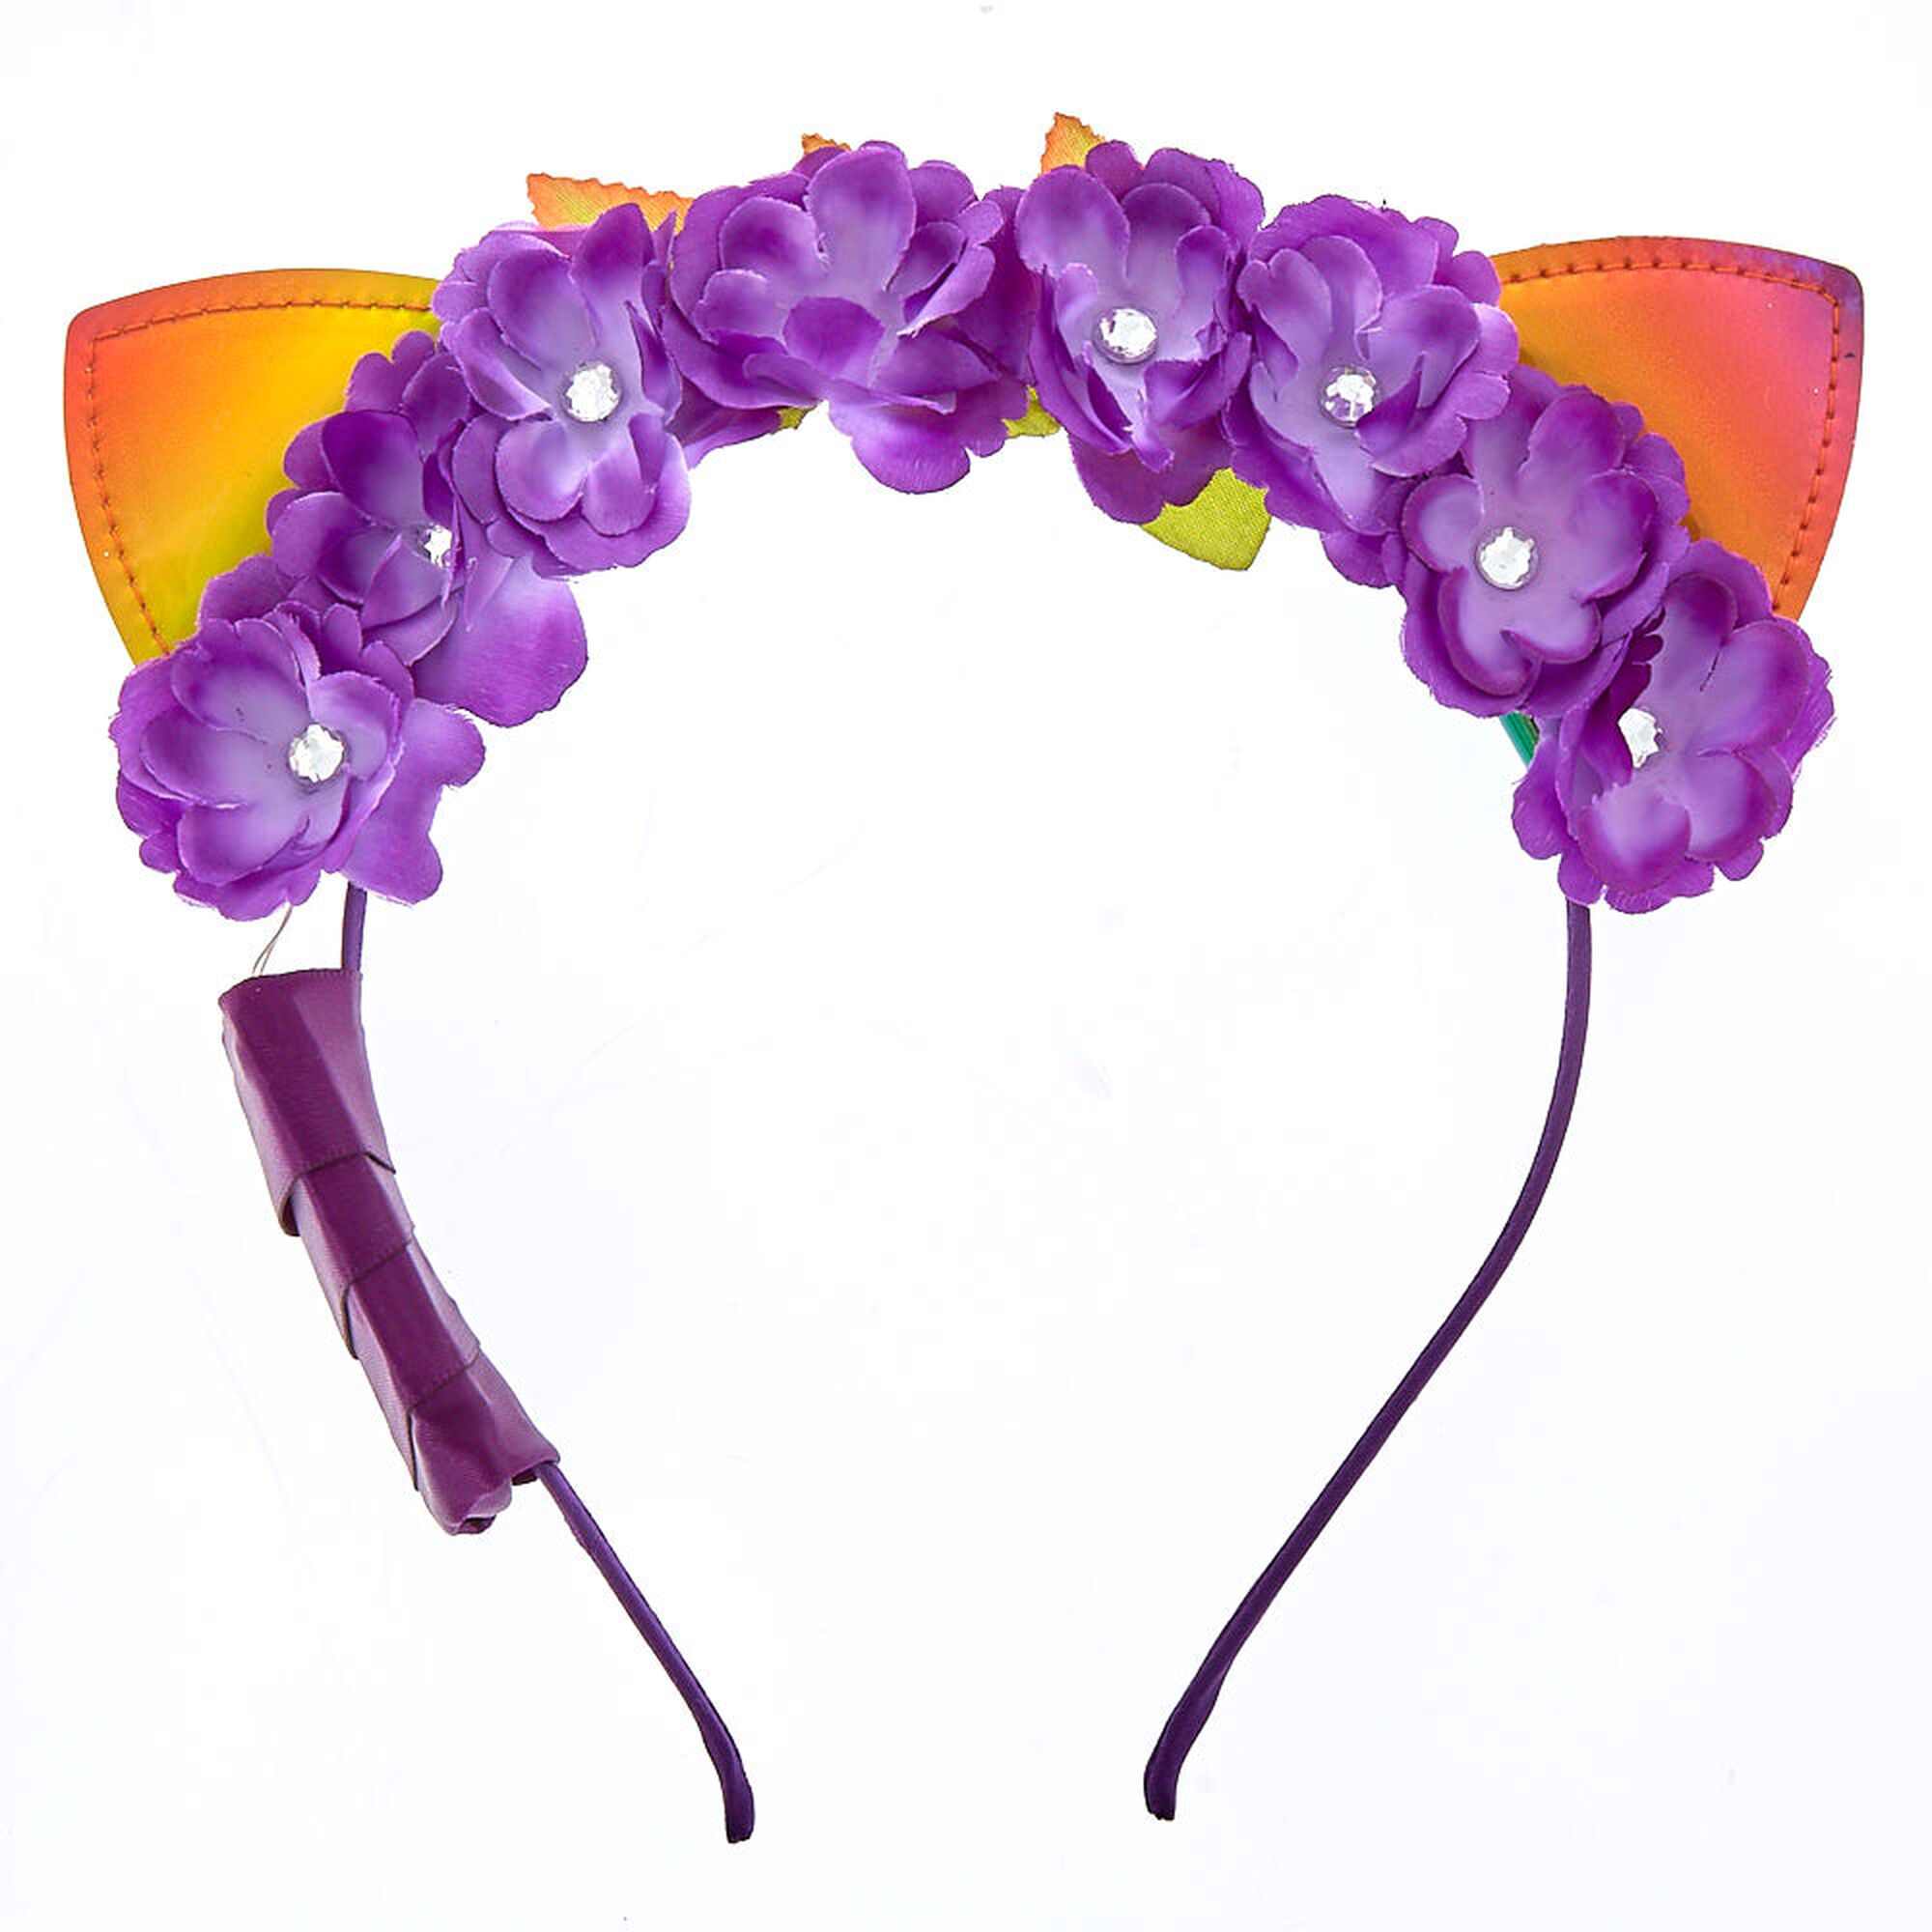 Light up anodized cat ears flower crown headband purple claires us light up anodized cat ears flower crown headband purple izmirmasajfo